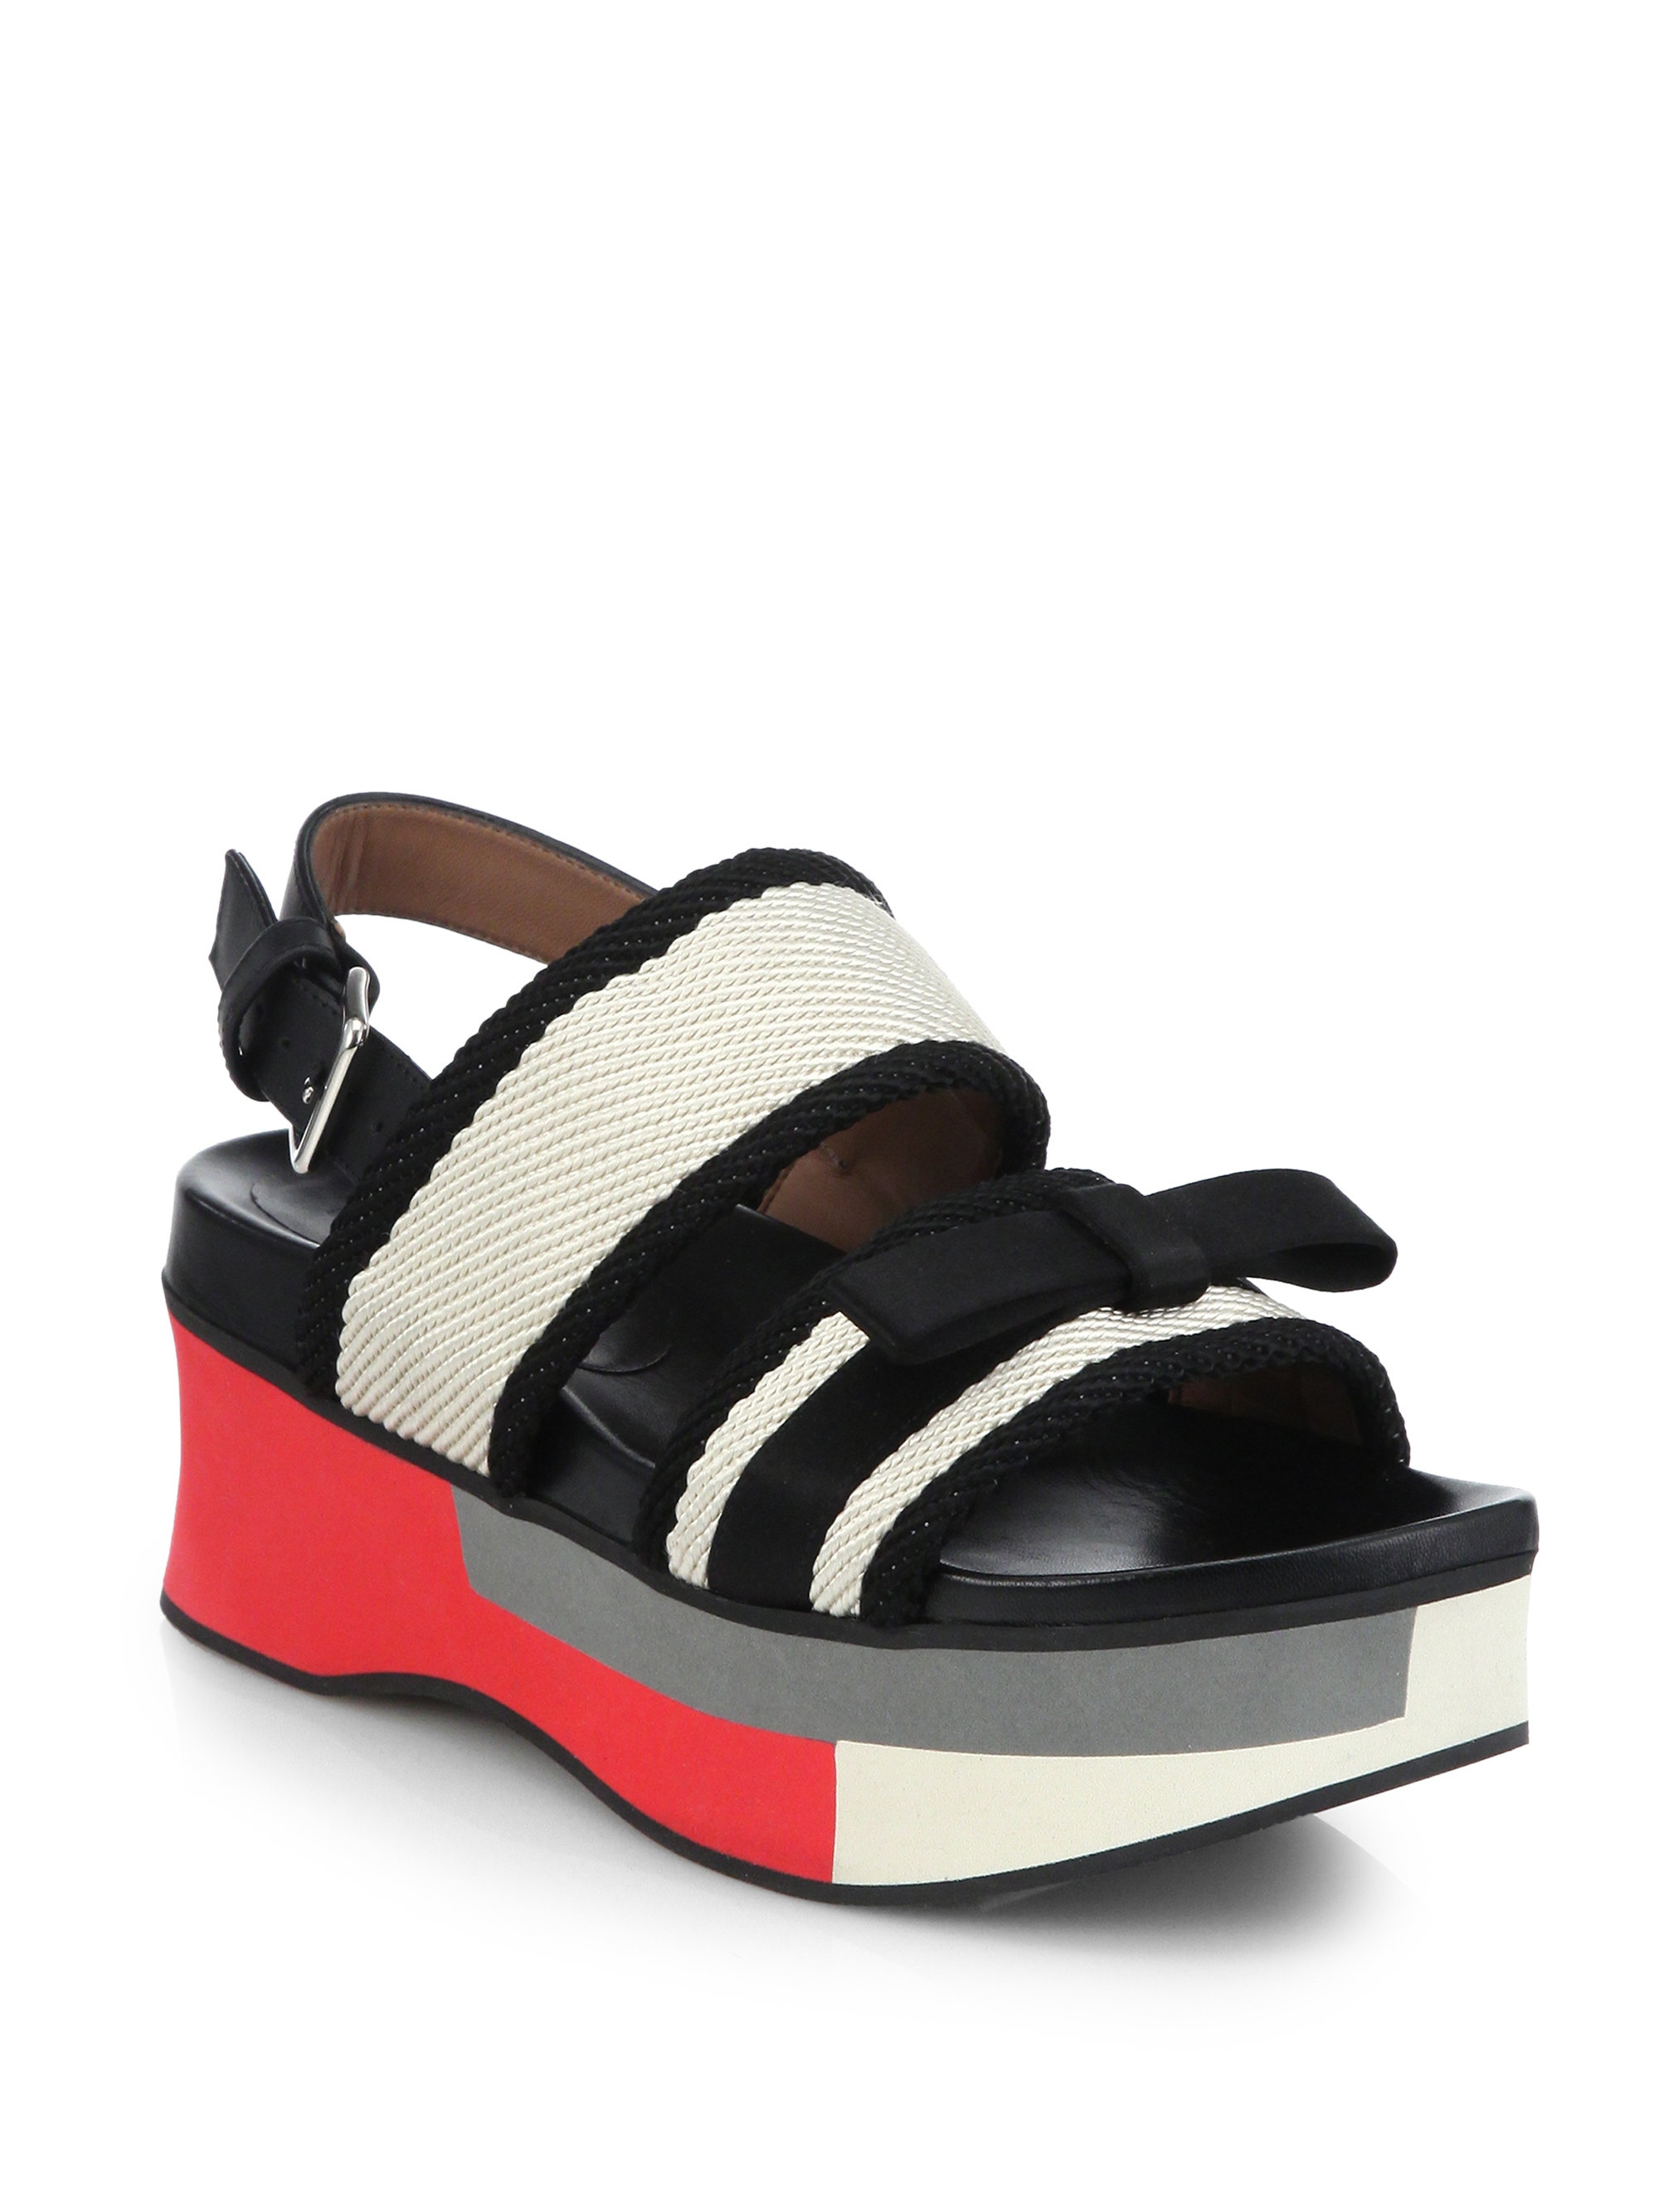 Marni Leather Amp Woven Bow Double Strap Platform Sandals In